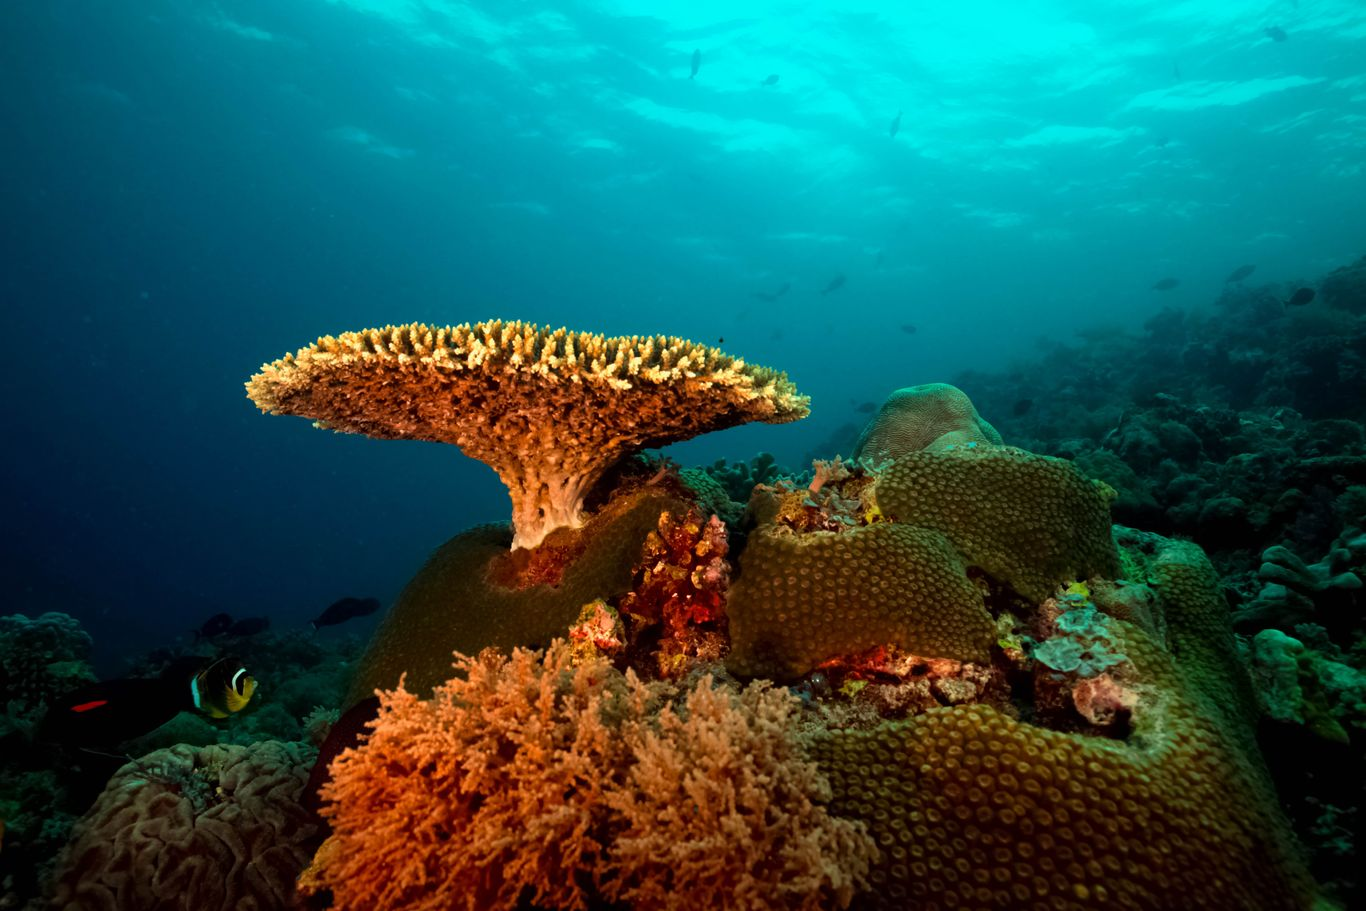 Different types of corals in the Tubbataha Reefs Natural Park, one of the UNESCO World Heritage Sites in the Philippines